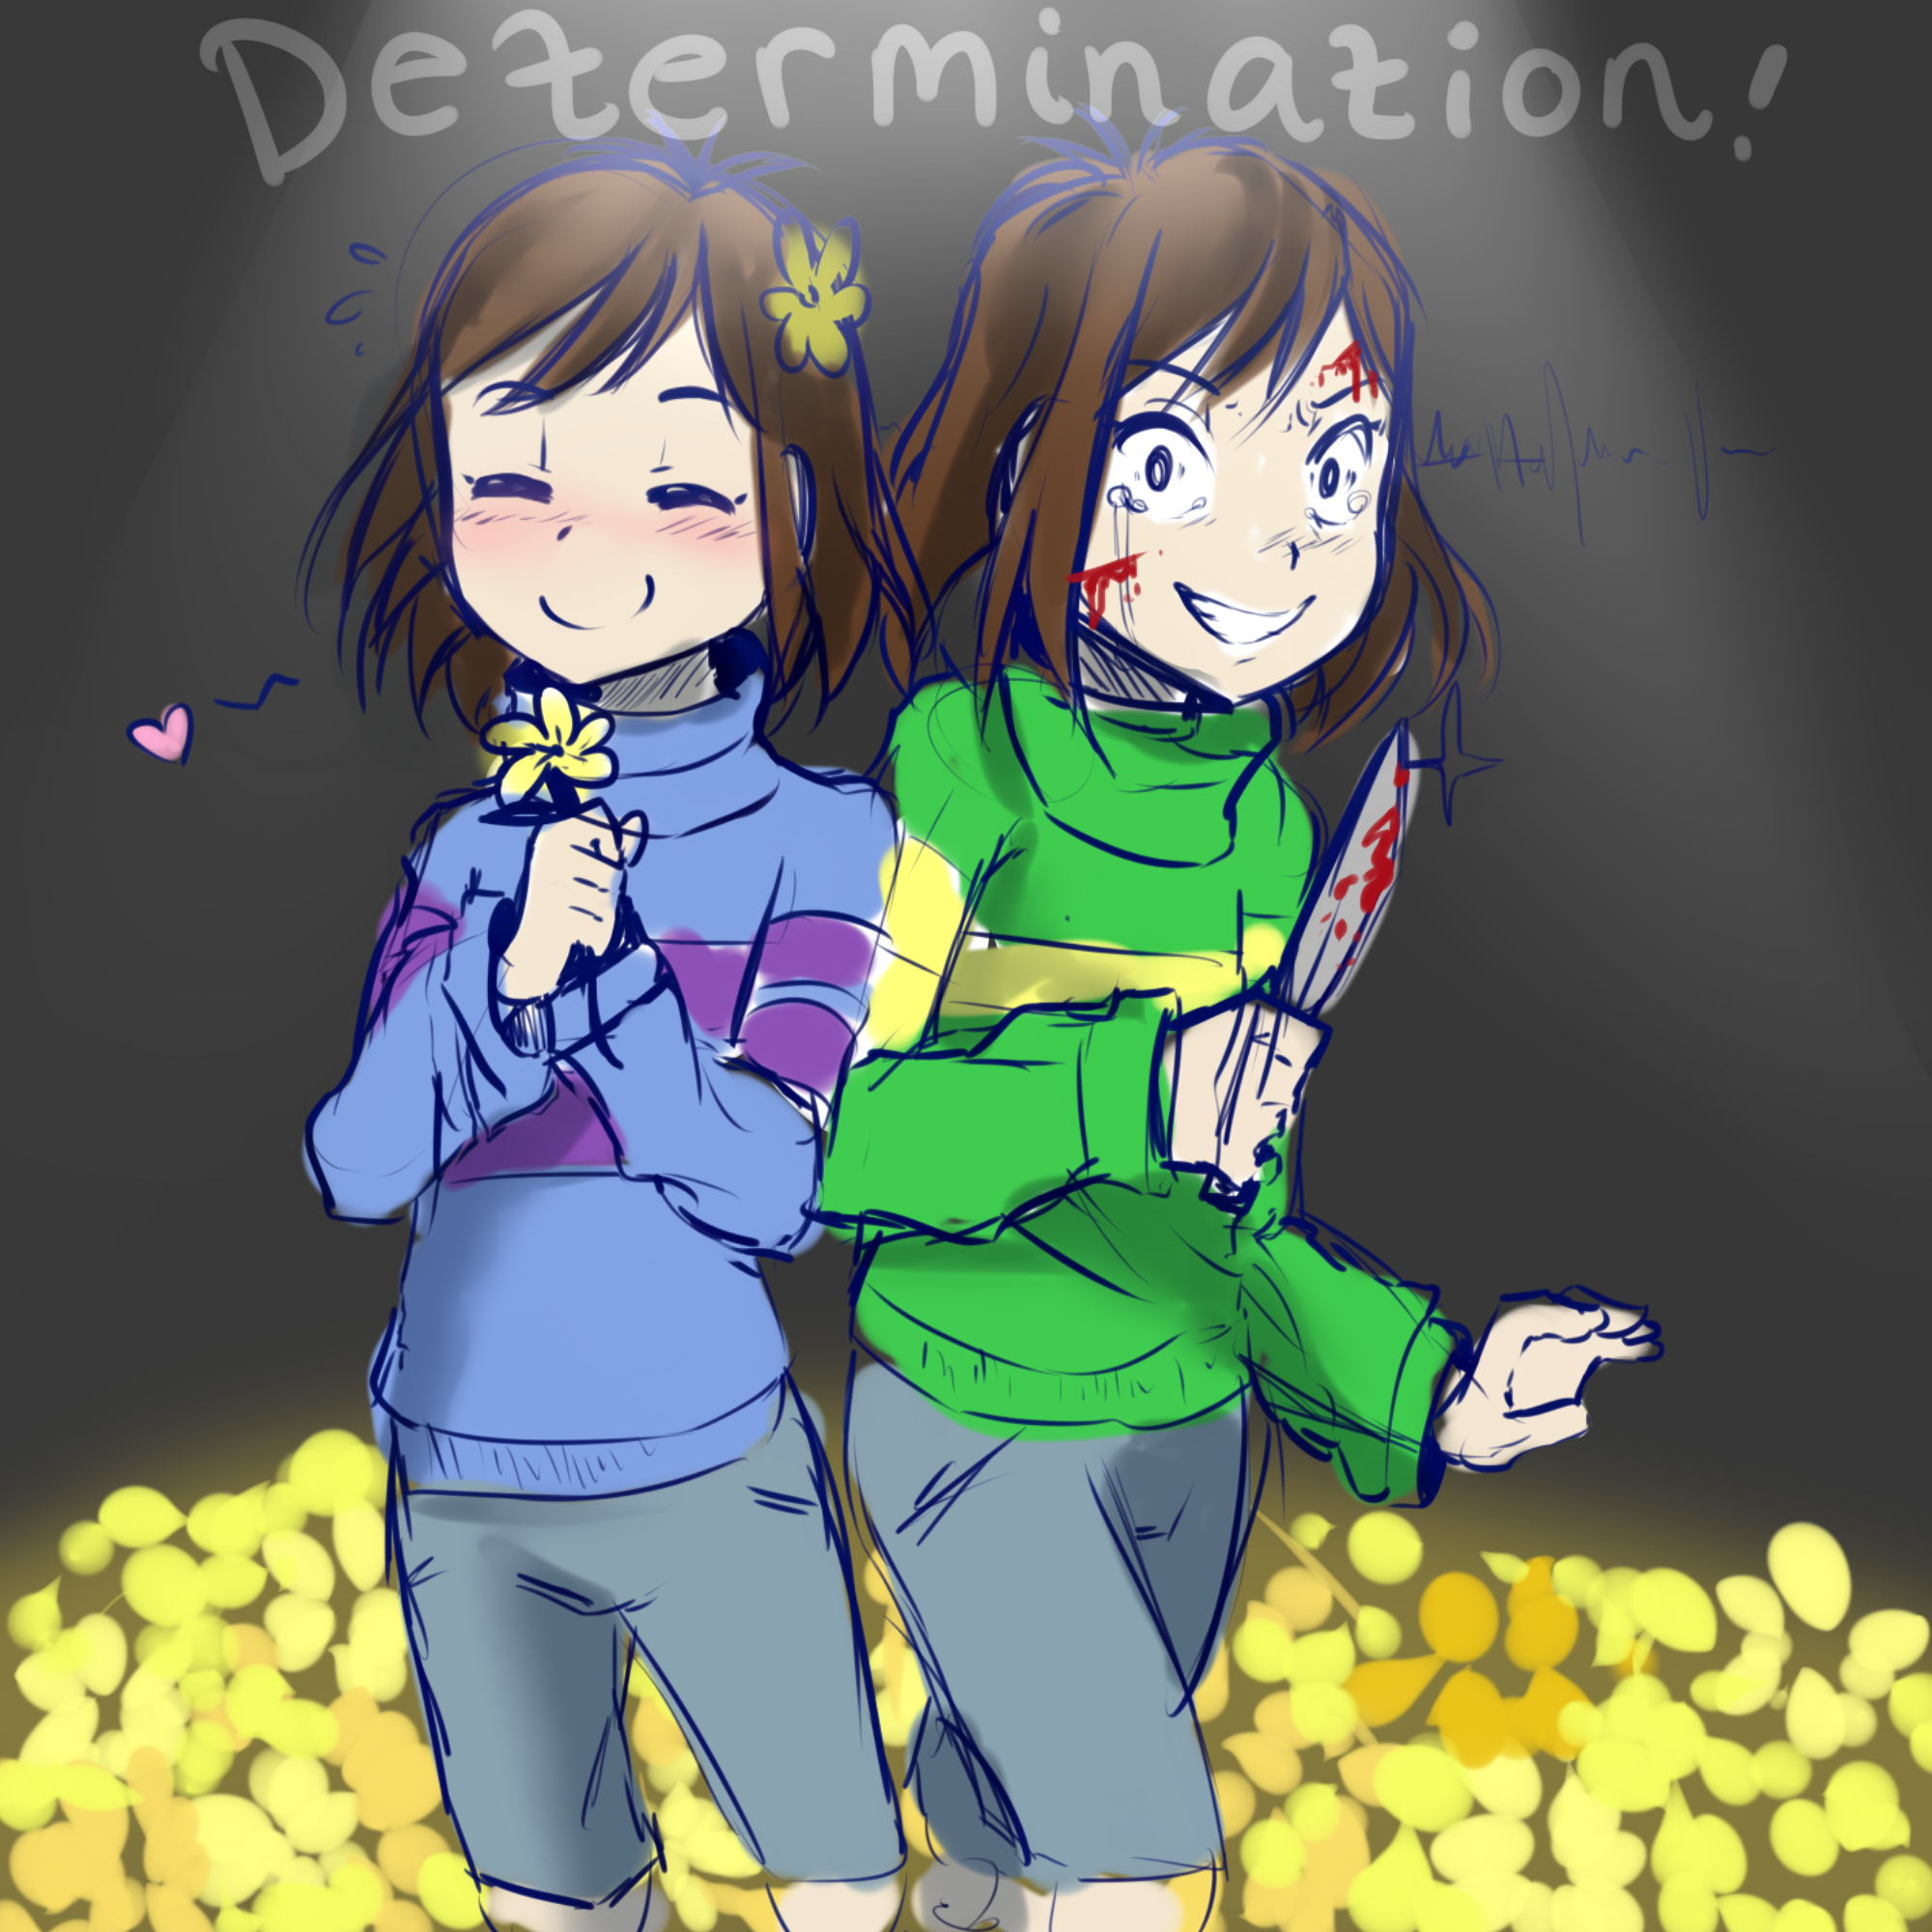 Chara And Frisk by meotashie on DeviantArt